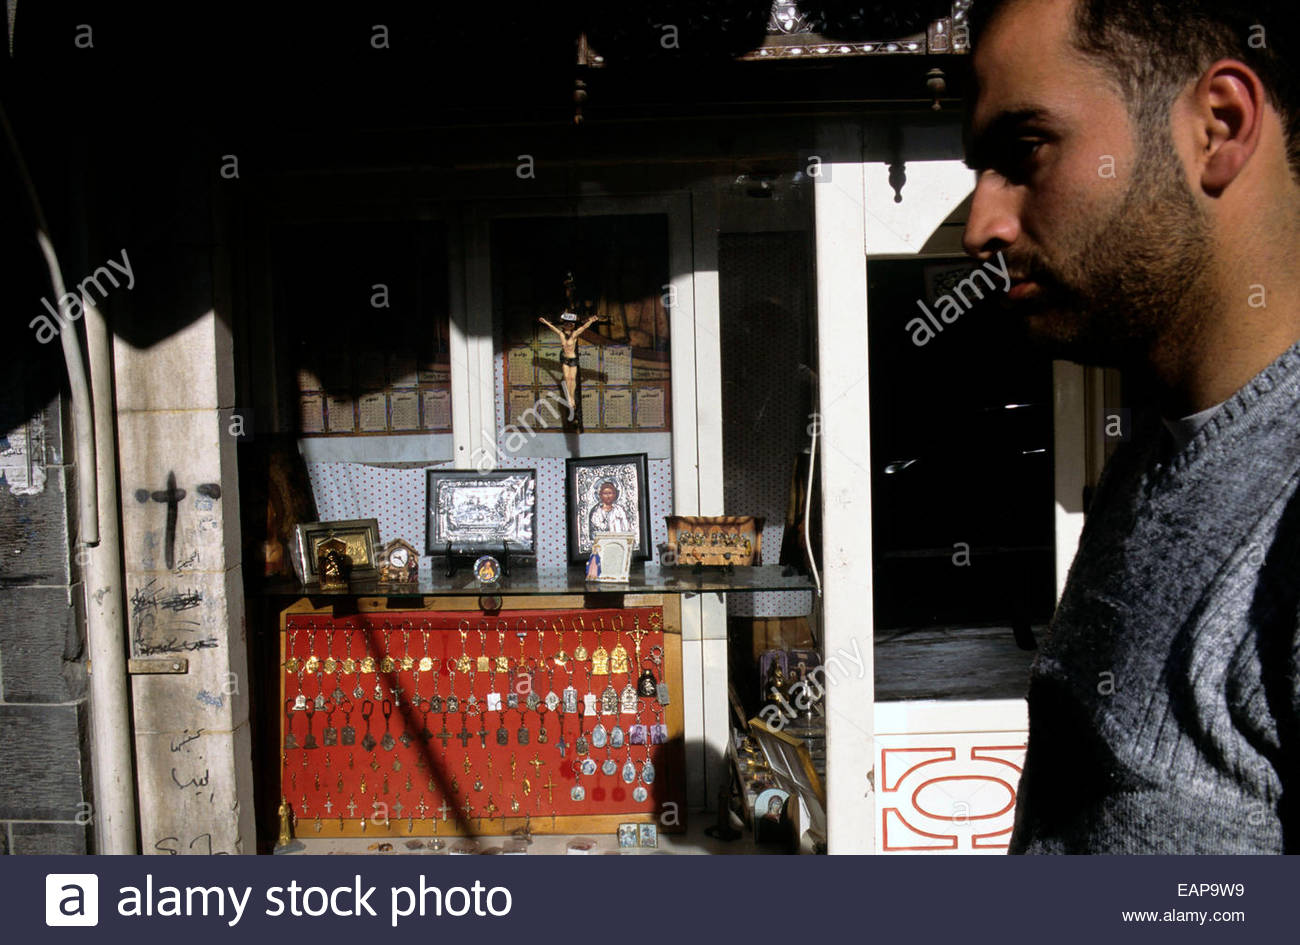 A man near a shop offering religious items, Damascus catholic district, Syria. - Stock Image